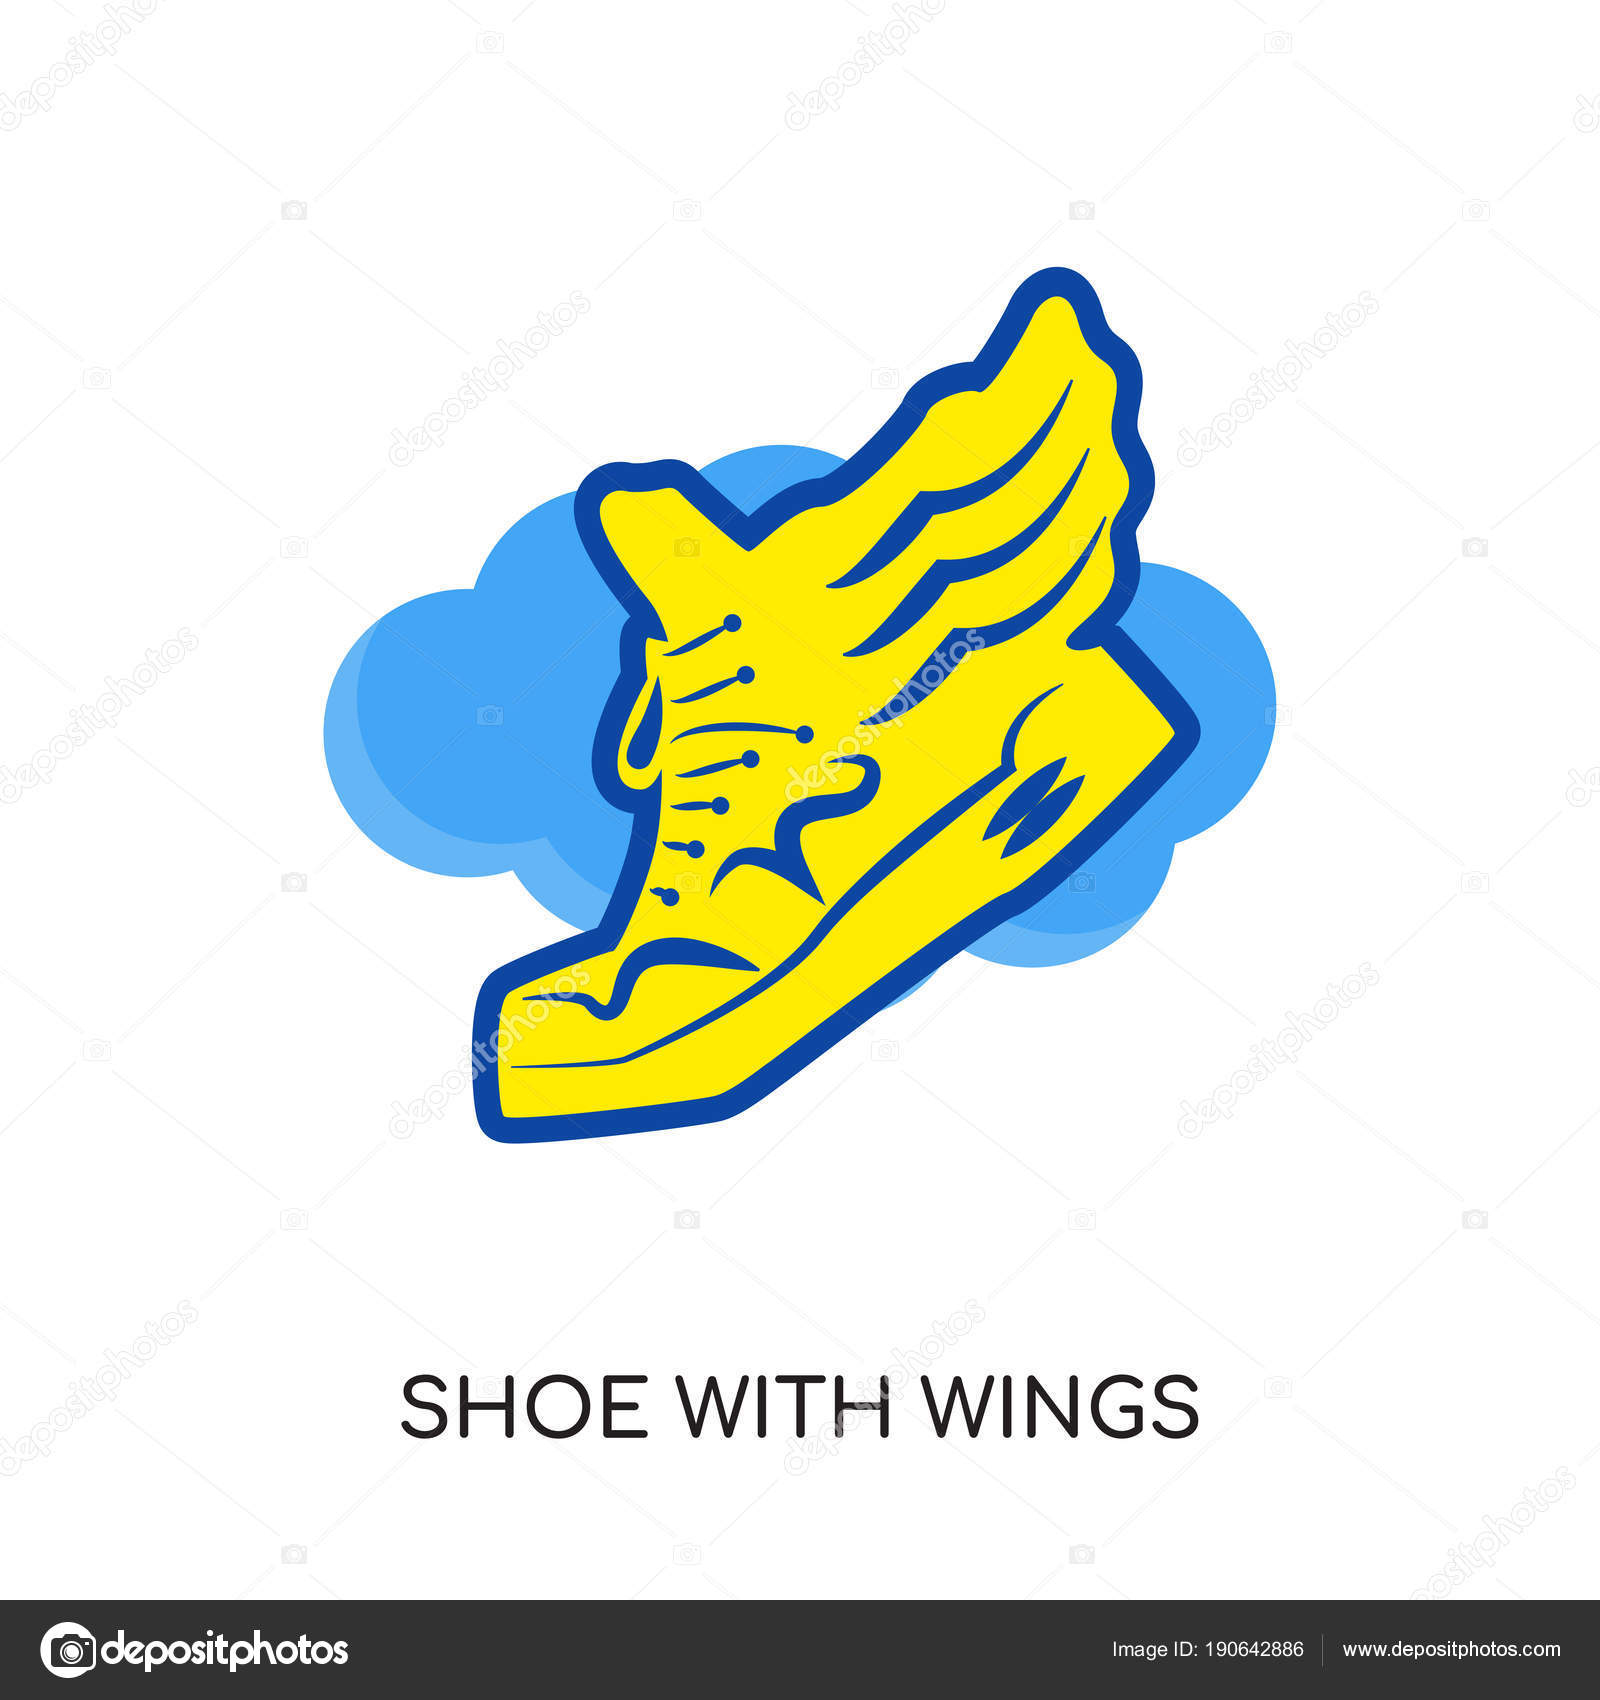 shoe with wings logo isolated on white background for your web rh depositphotos com shoes with wings logo company shoes with wings logo yellow